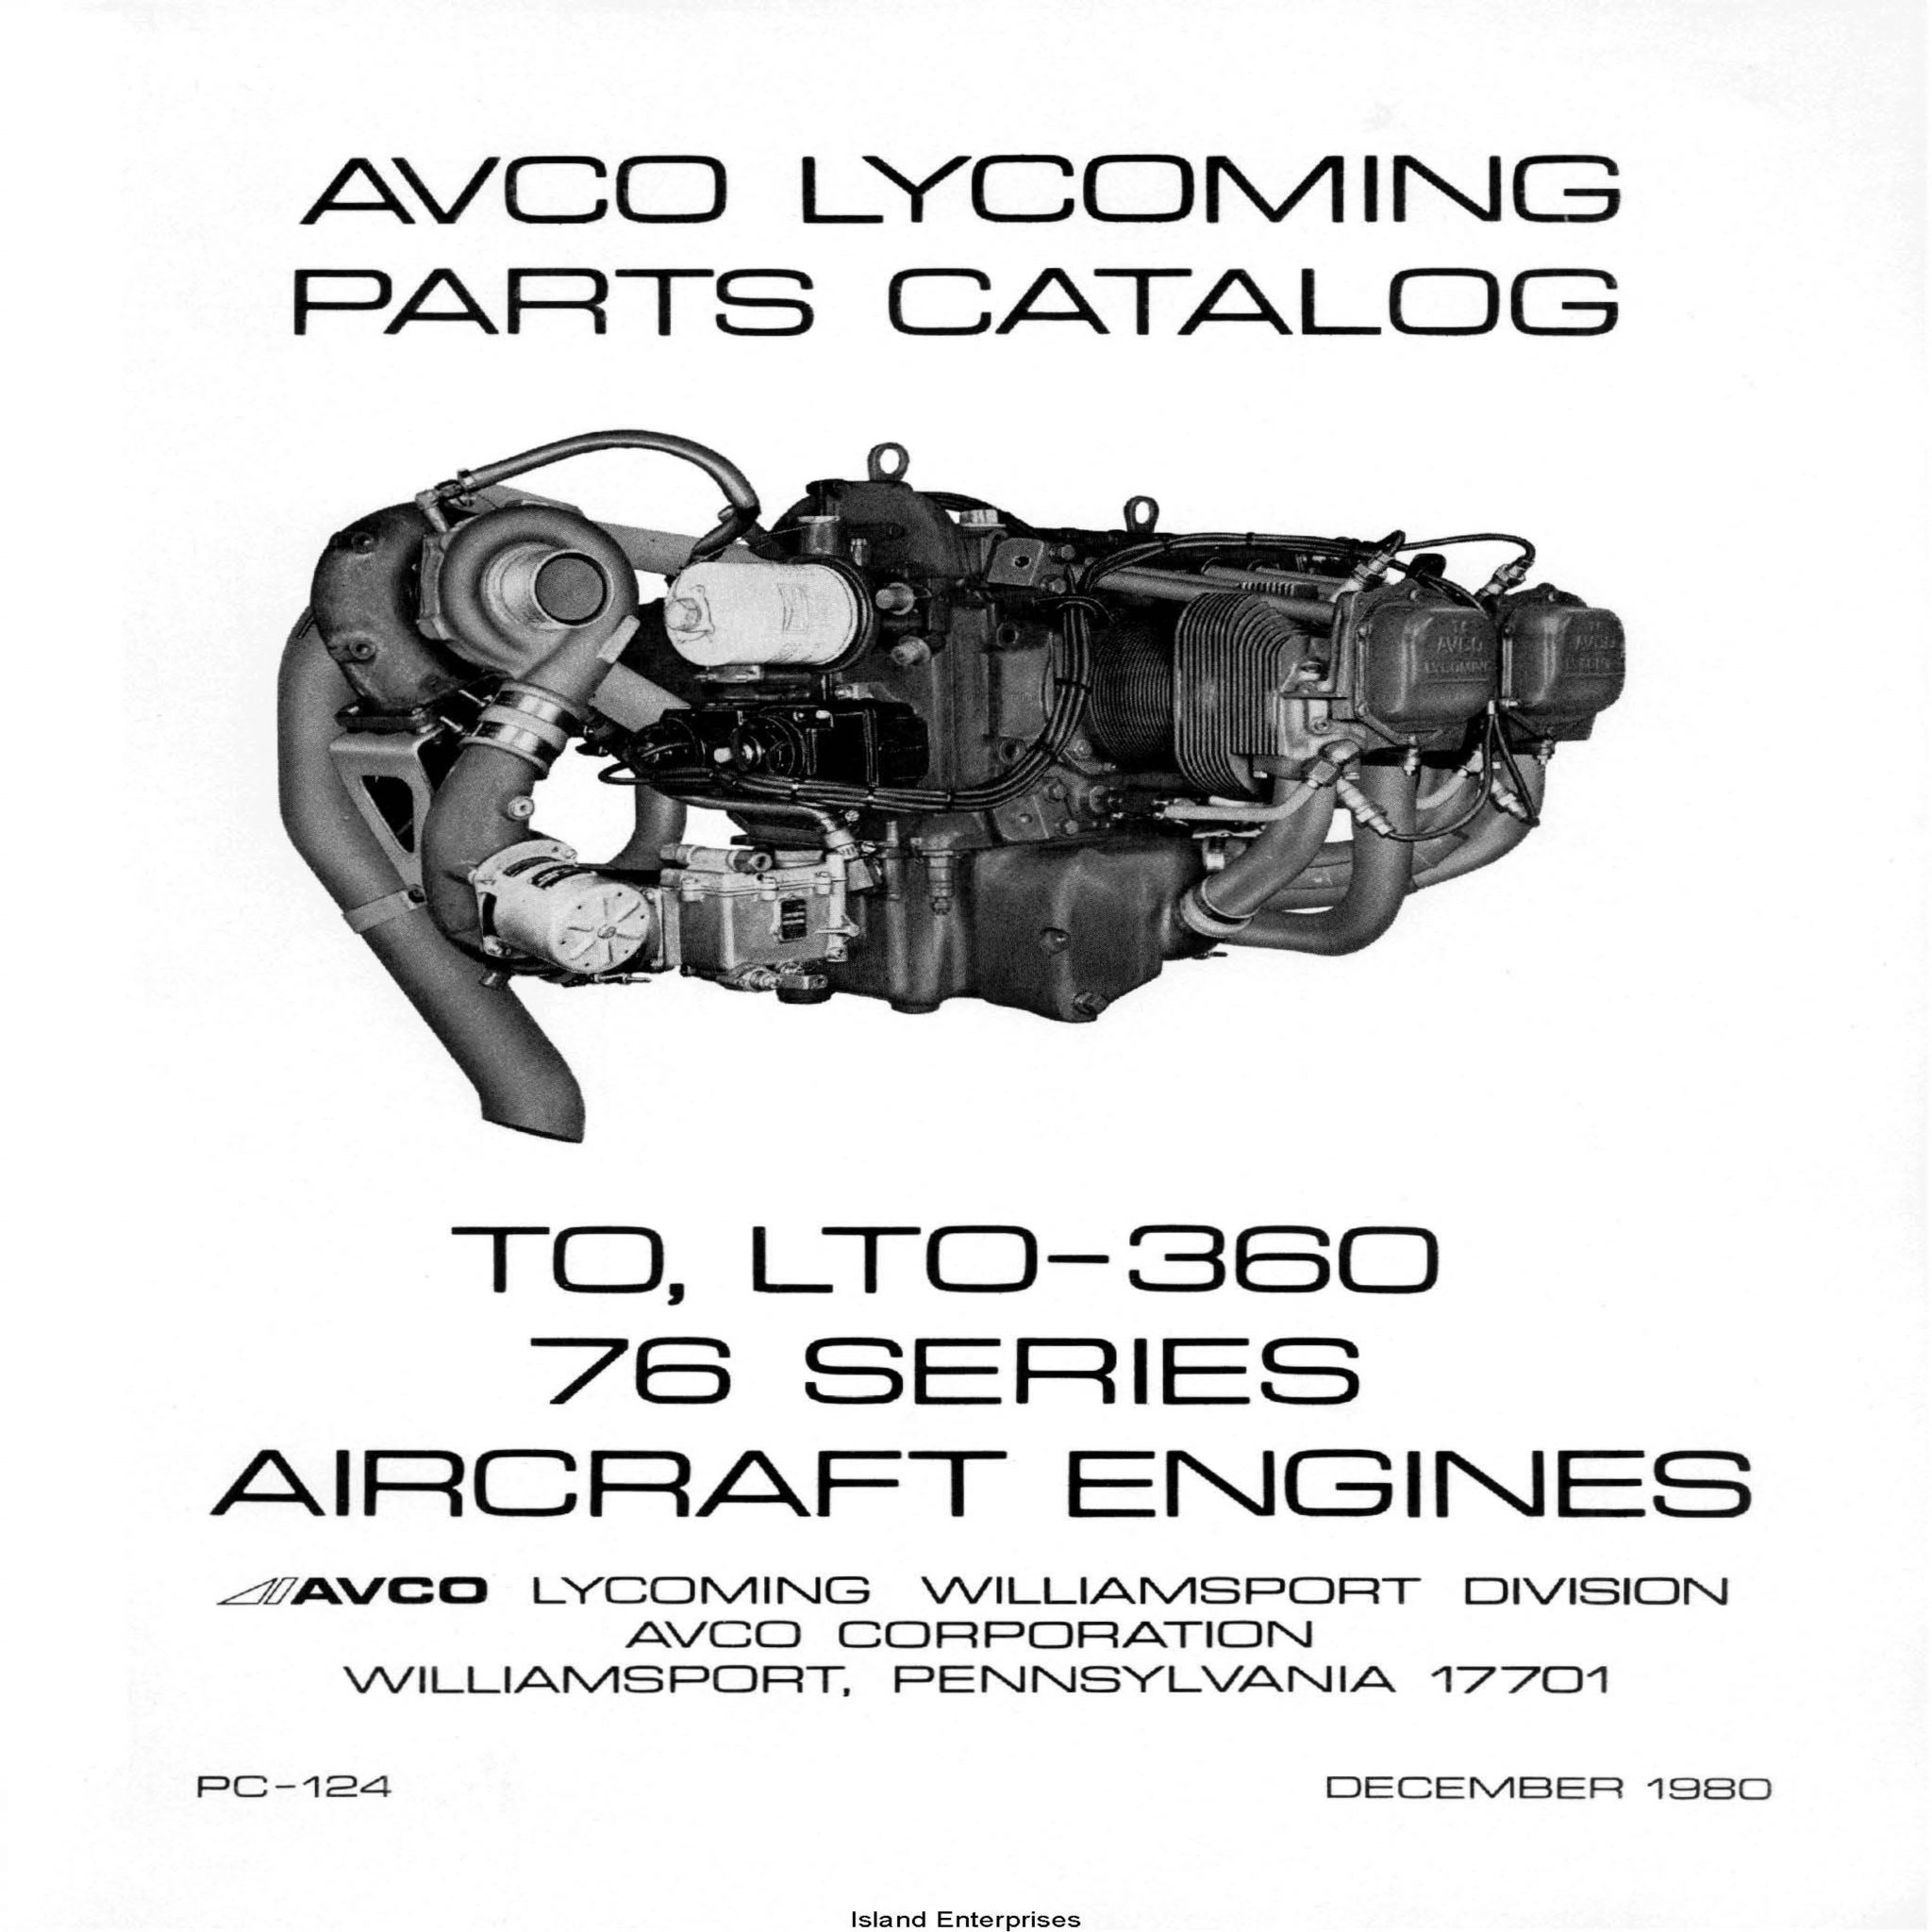 Lycoming Parts Catalog TO, LTO-360 76 Series Part # PC-124